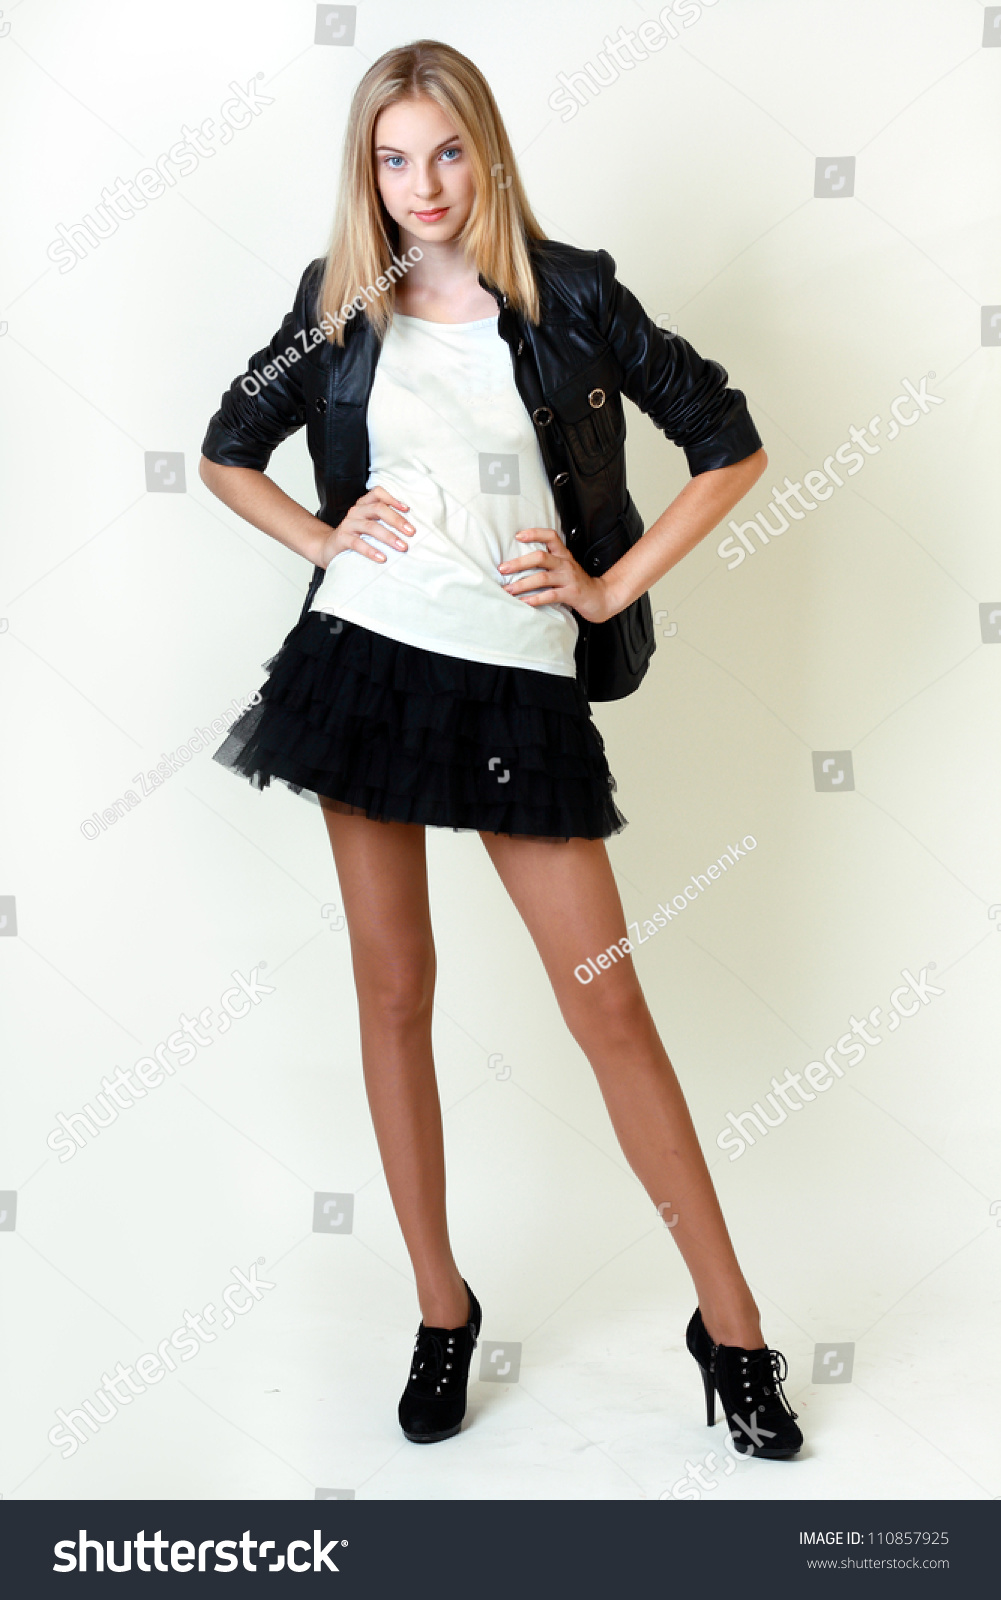 d3a537f25 Portrait of trendy teen girl in miniskirt and leather jacket smiling against  white background